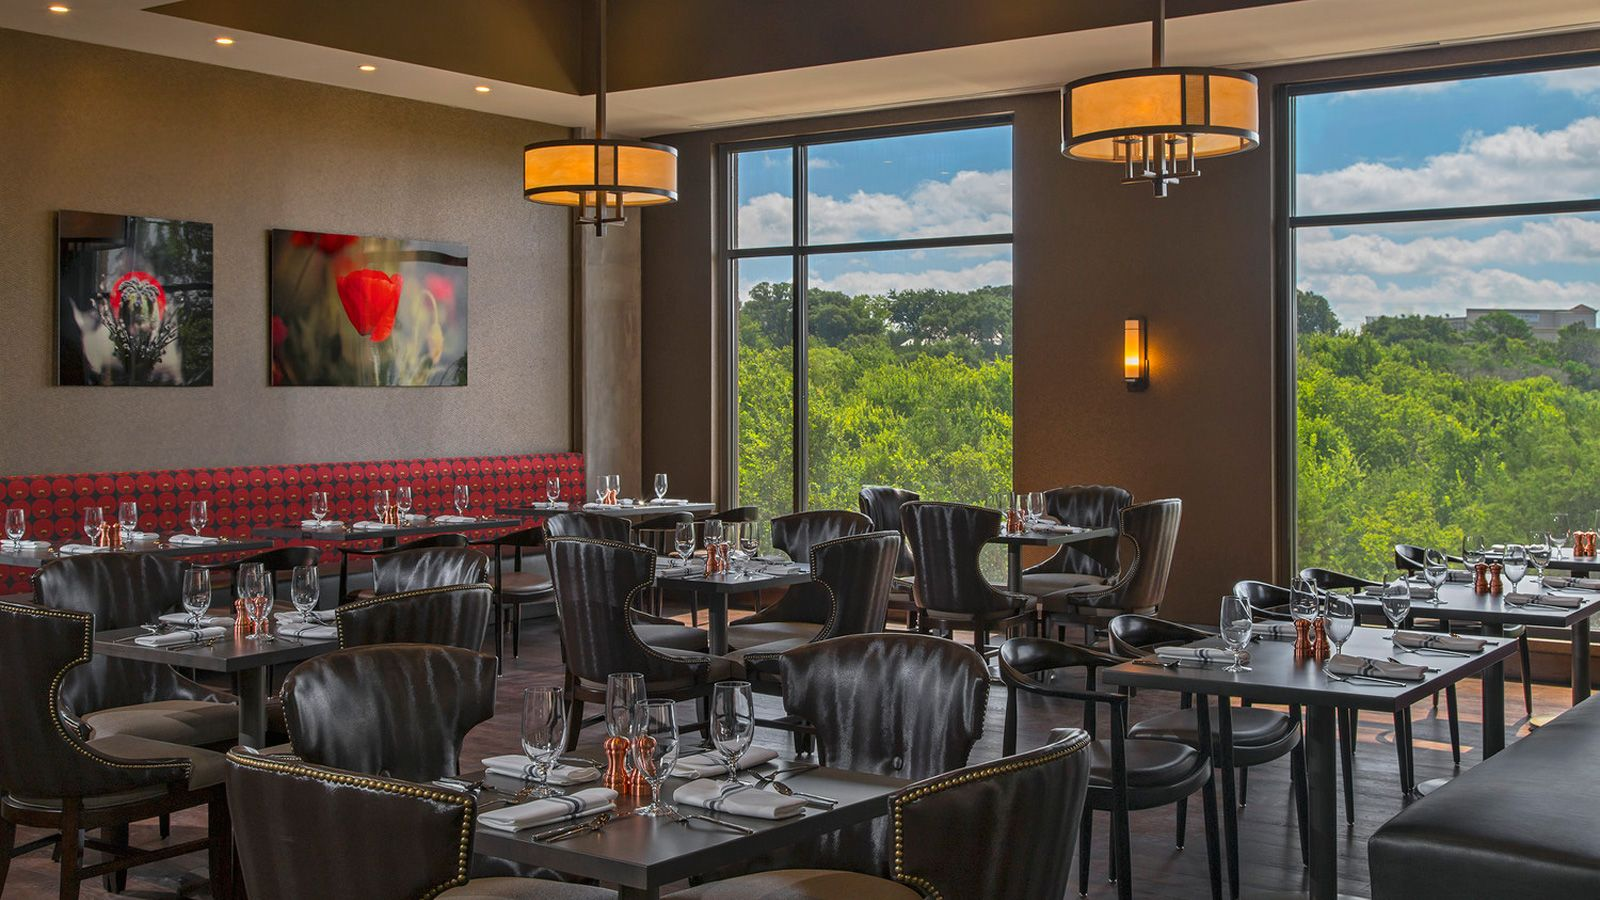 Georgetown TX Restaurants - Brix And Ale - Sheraton Austin Georgetown Hotel & Conference Center